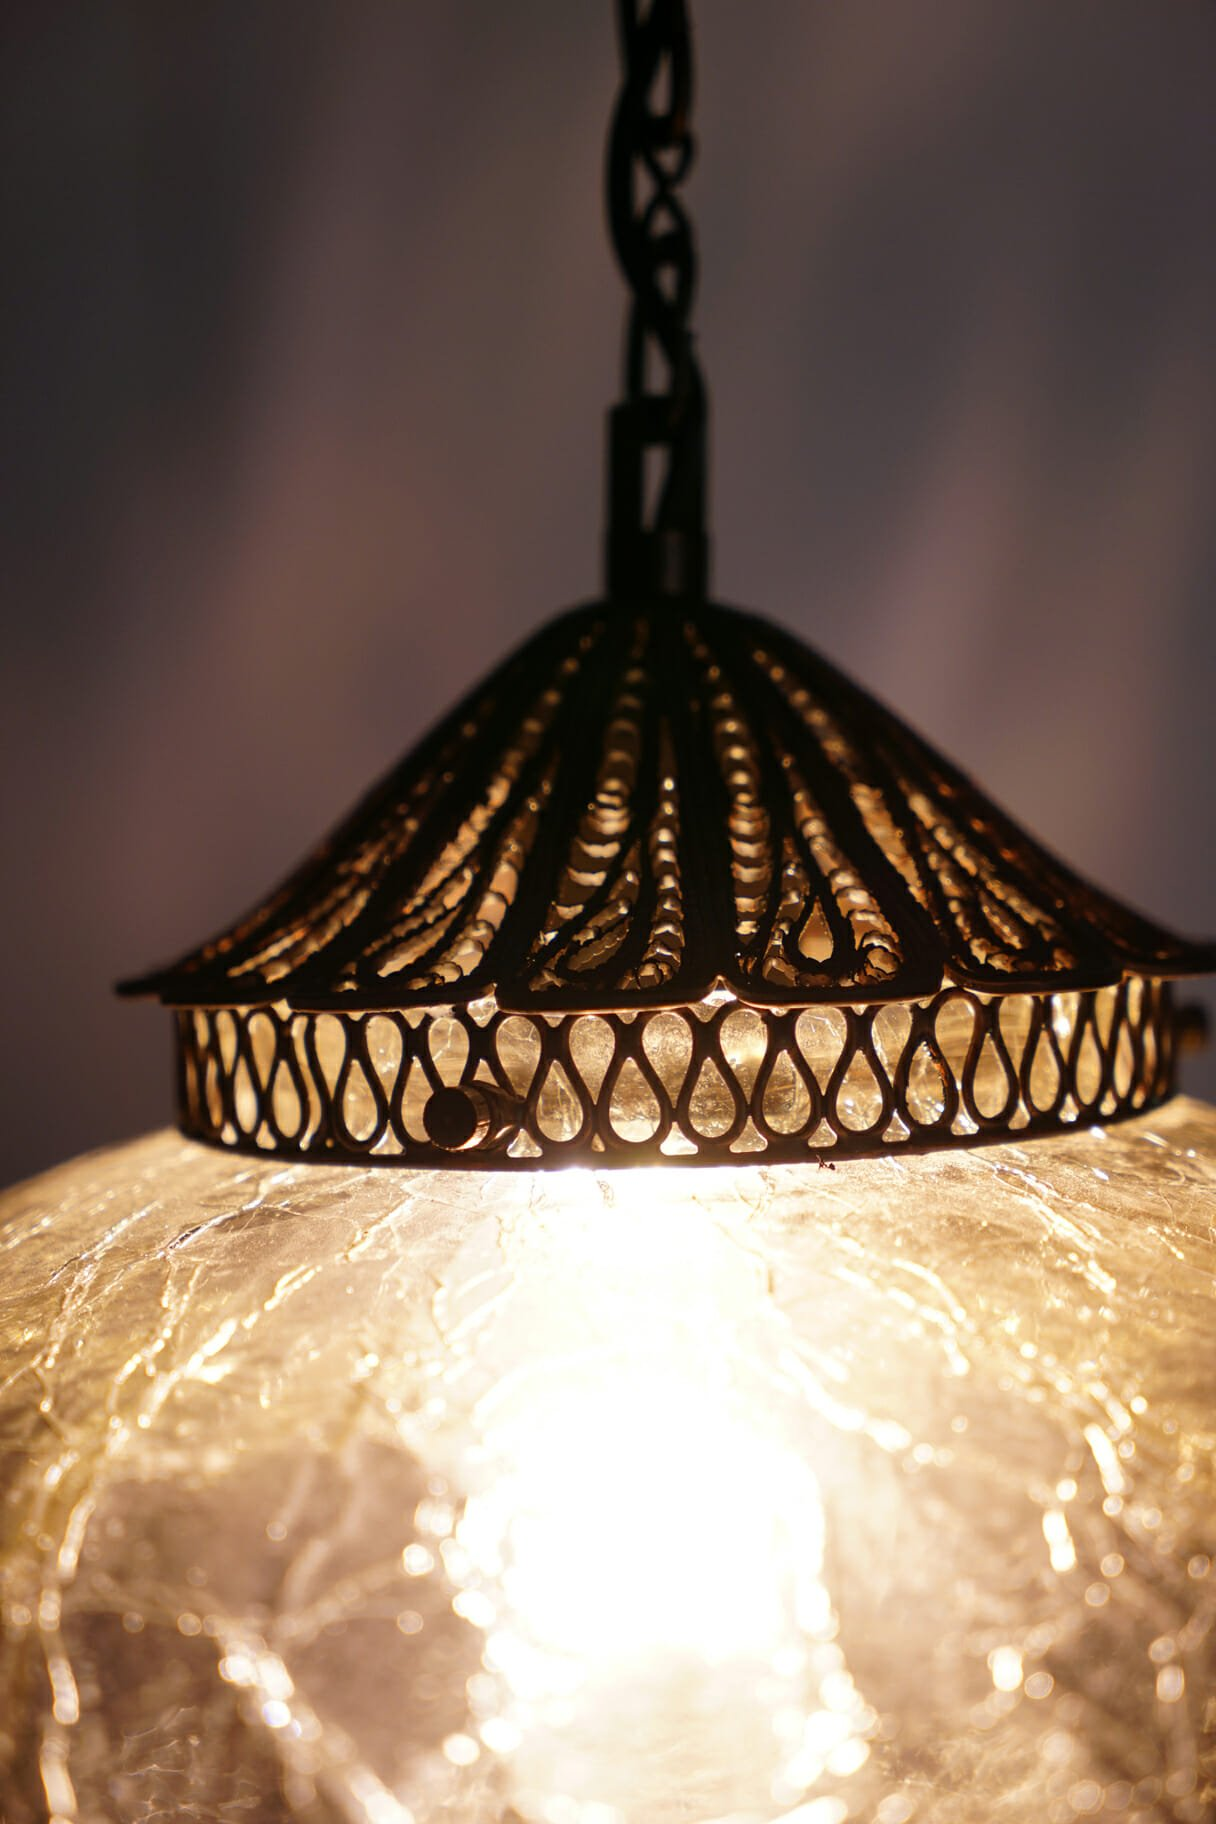 The lilian the dancing pixie 32cm filigree cracked glass ceiling light close up top aloadofball Images